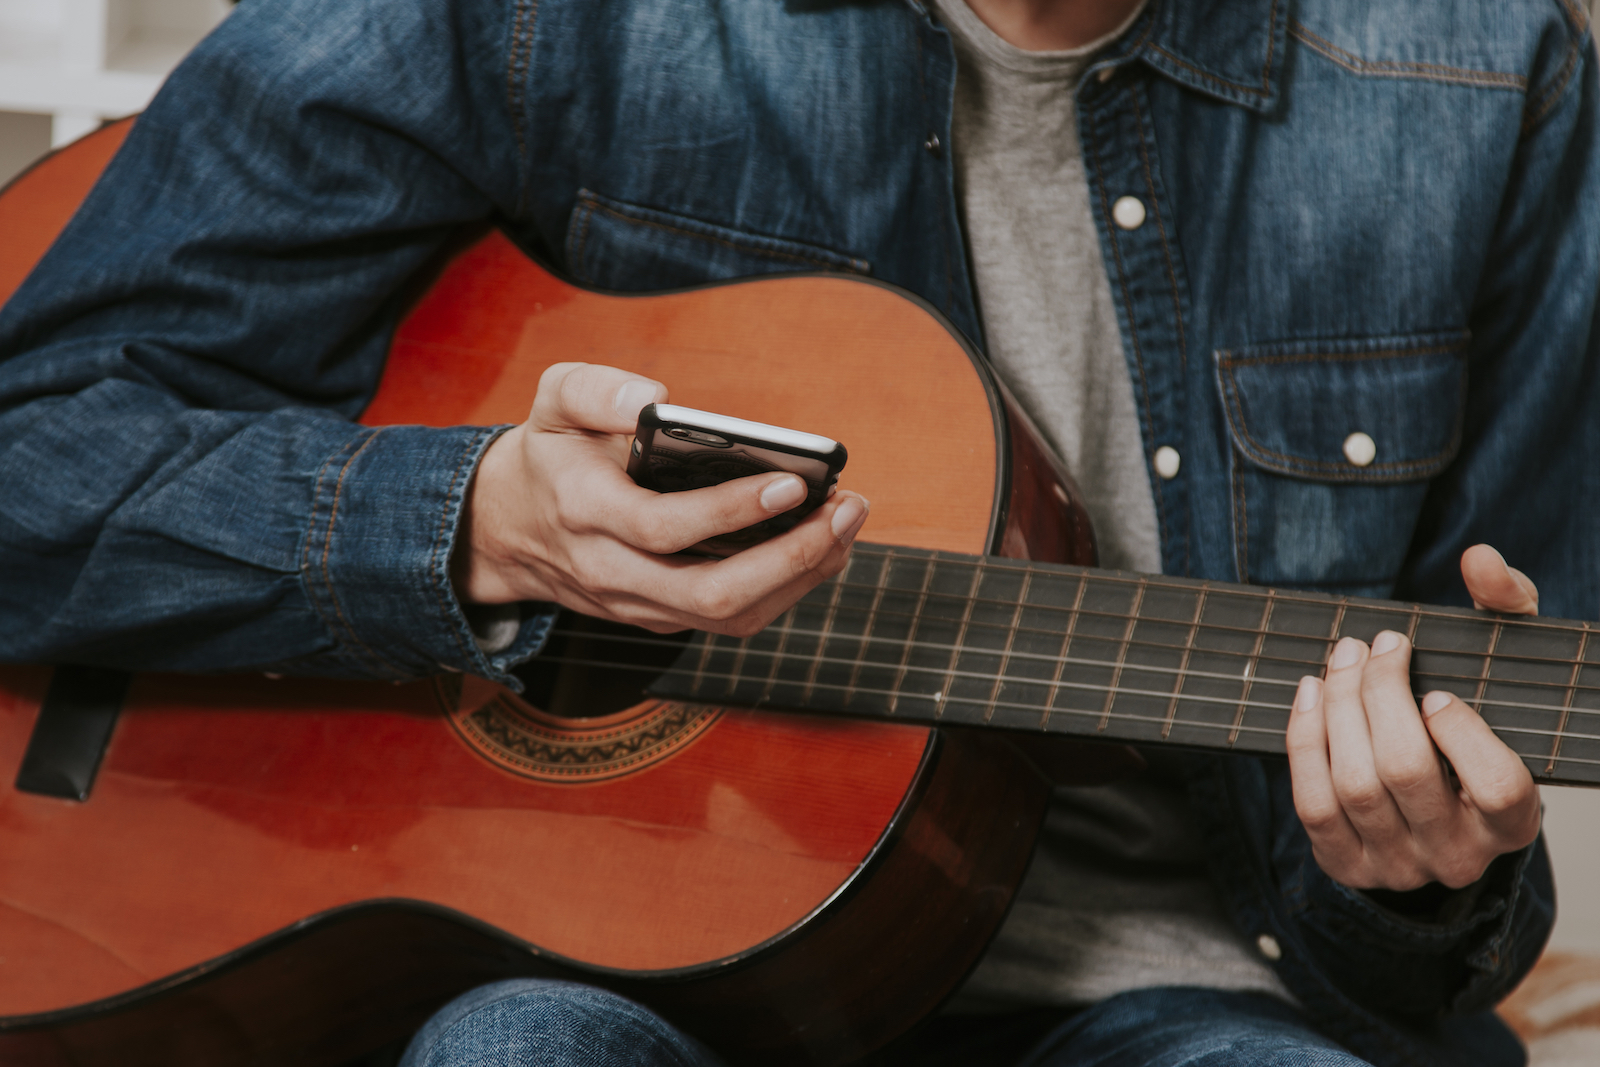 Man Playing Guitar Holding a Mobile Phone | 3 Simple Steps to Teach Yourself Guitar Chords Today